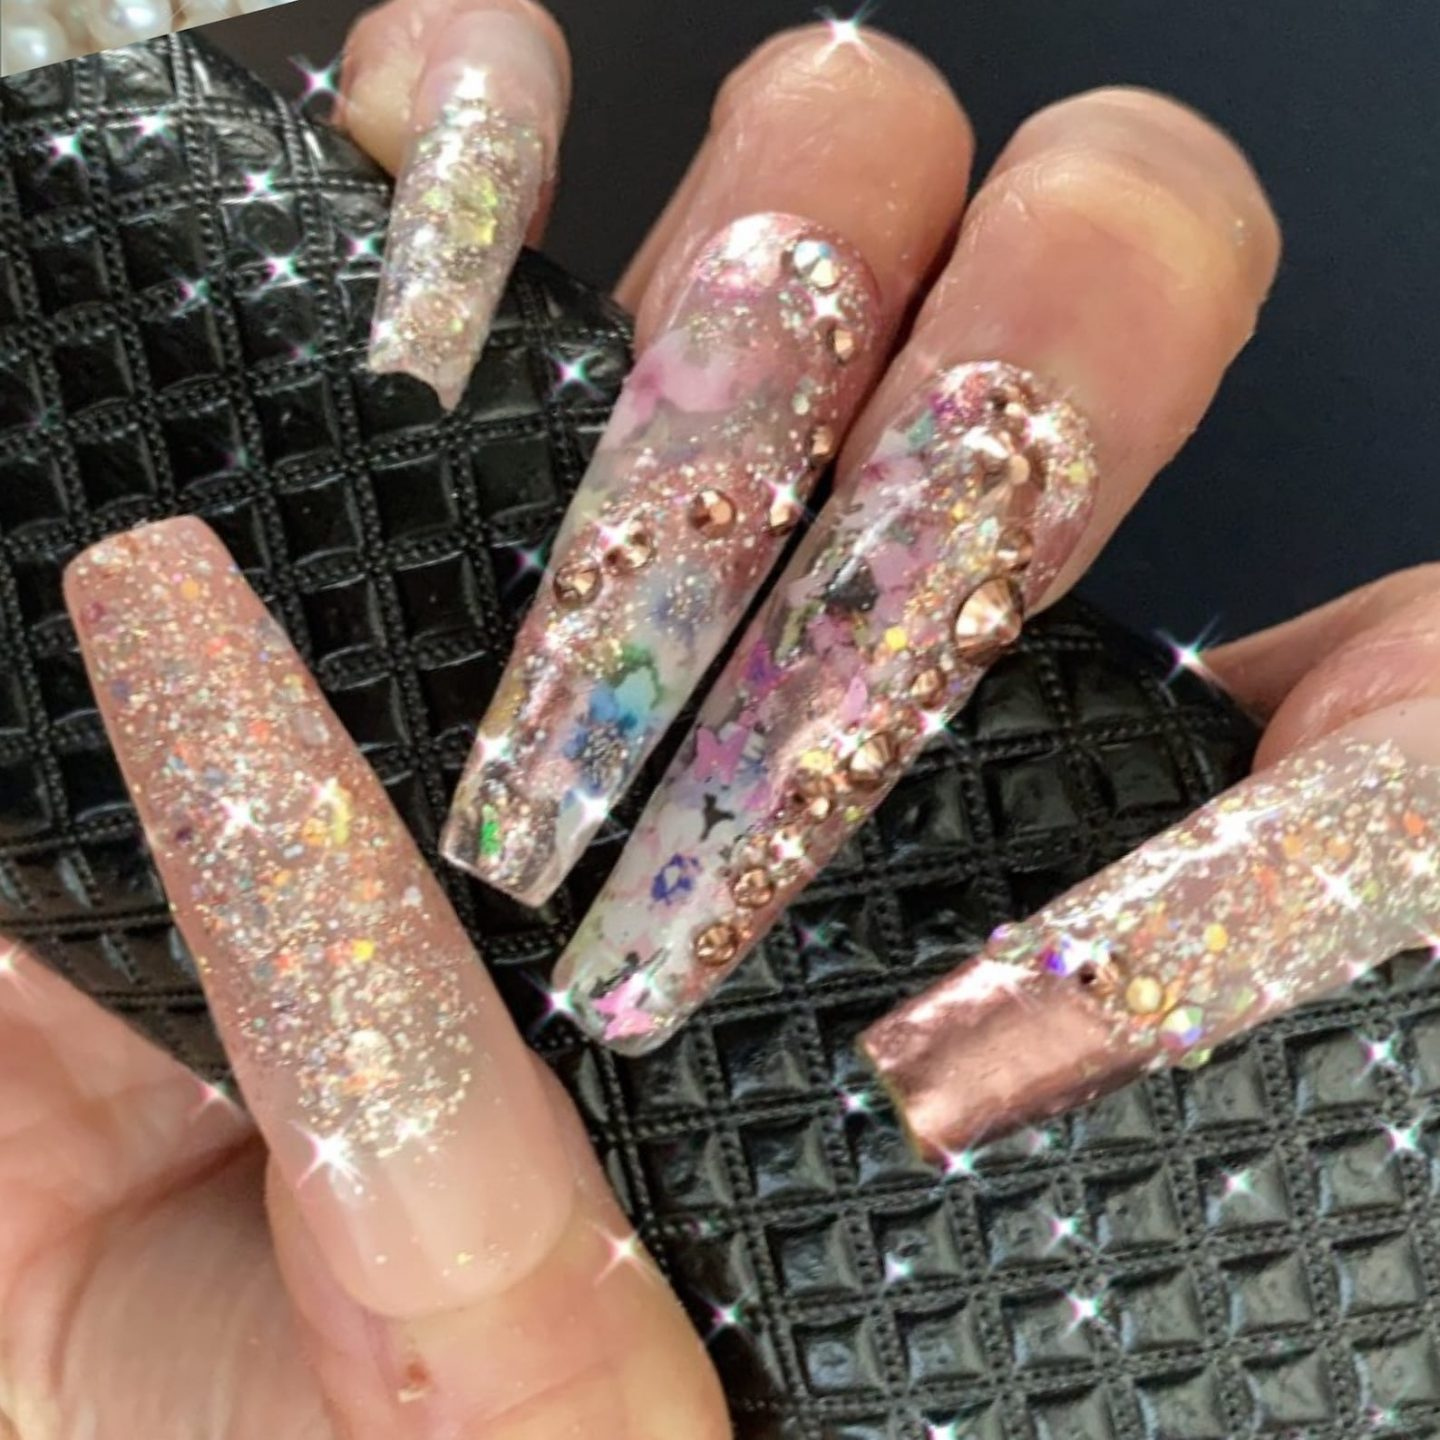 Glam long nude nails with glitter and rhinestones